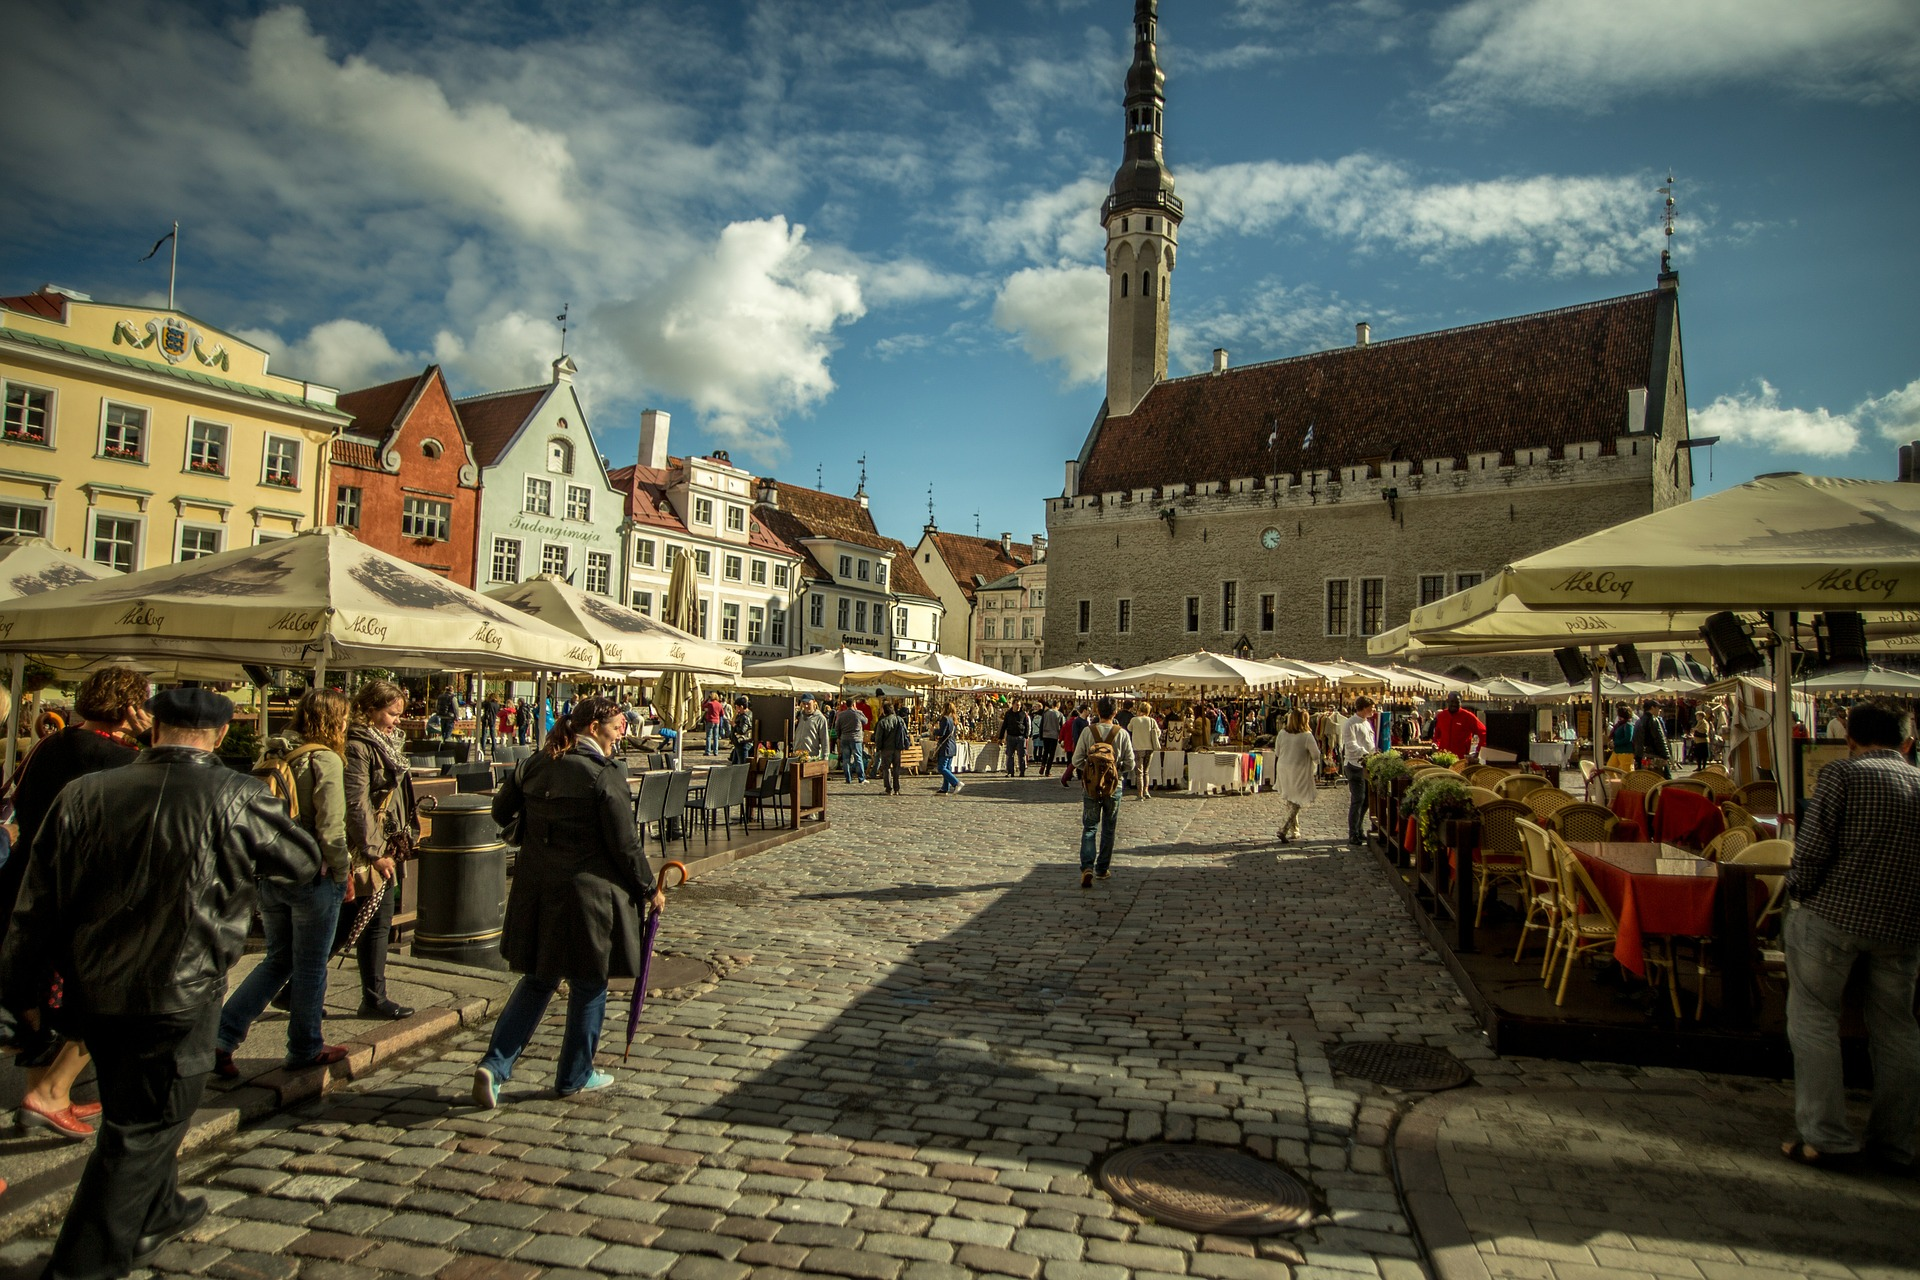 Tallinn's glorious Town Hall Square, soaking up the sun on a busy day.